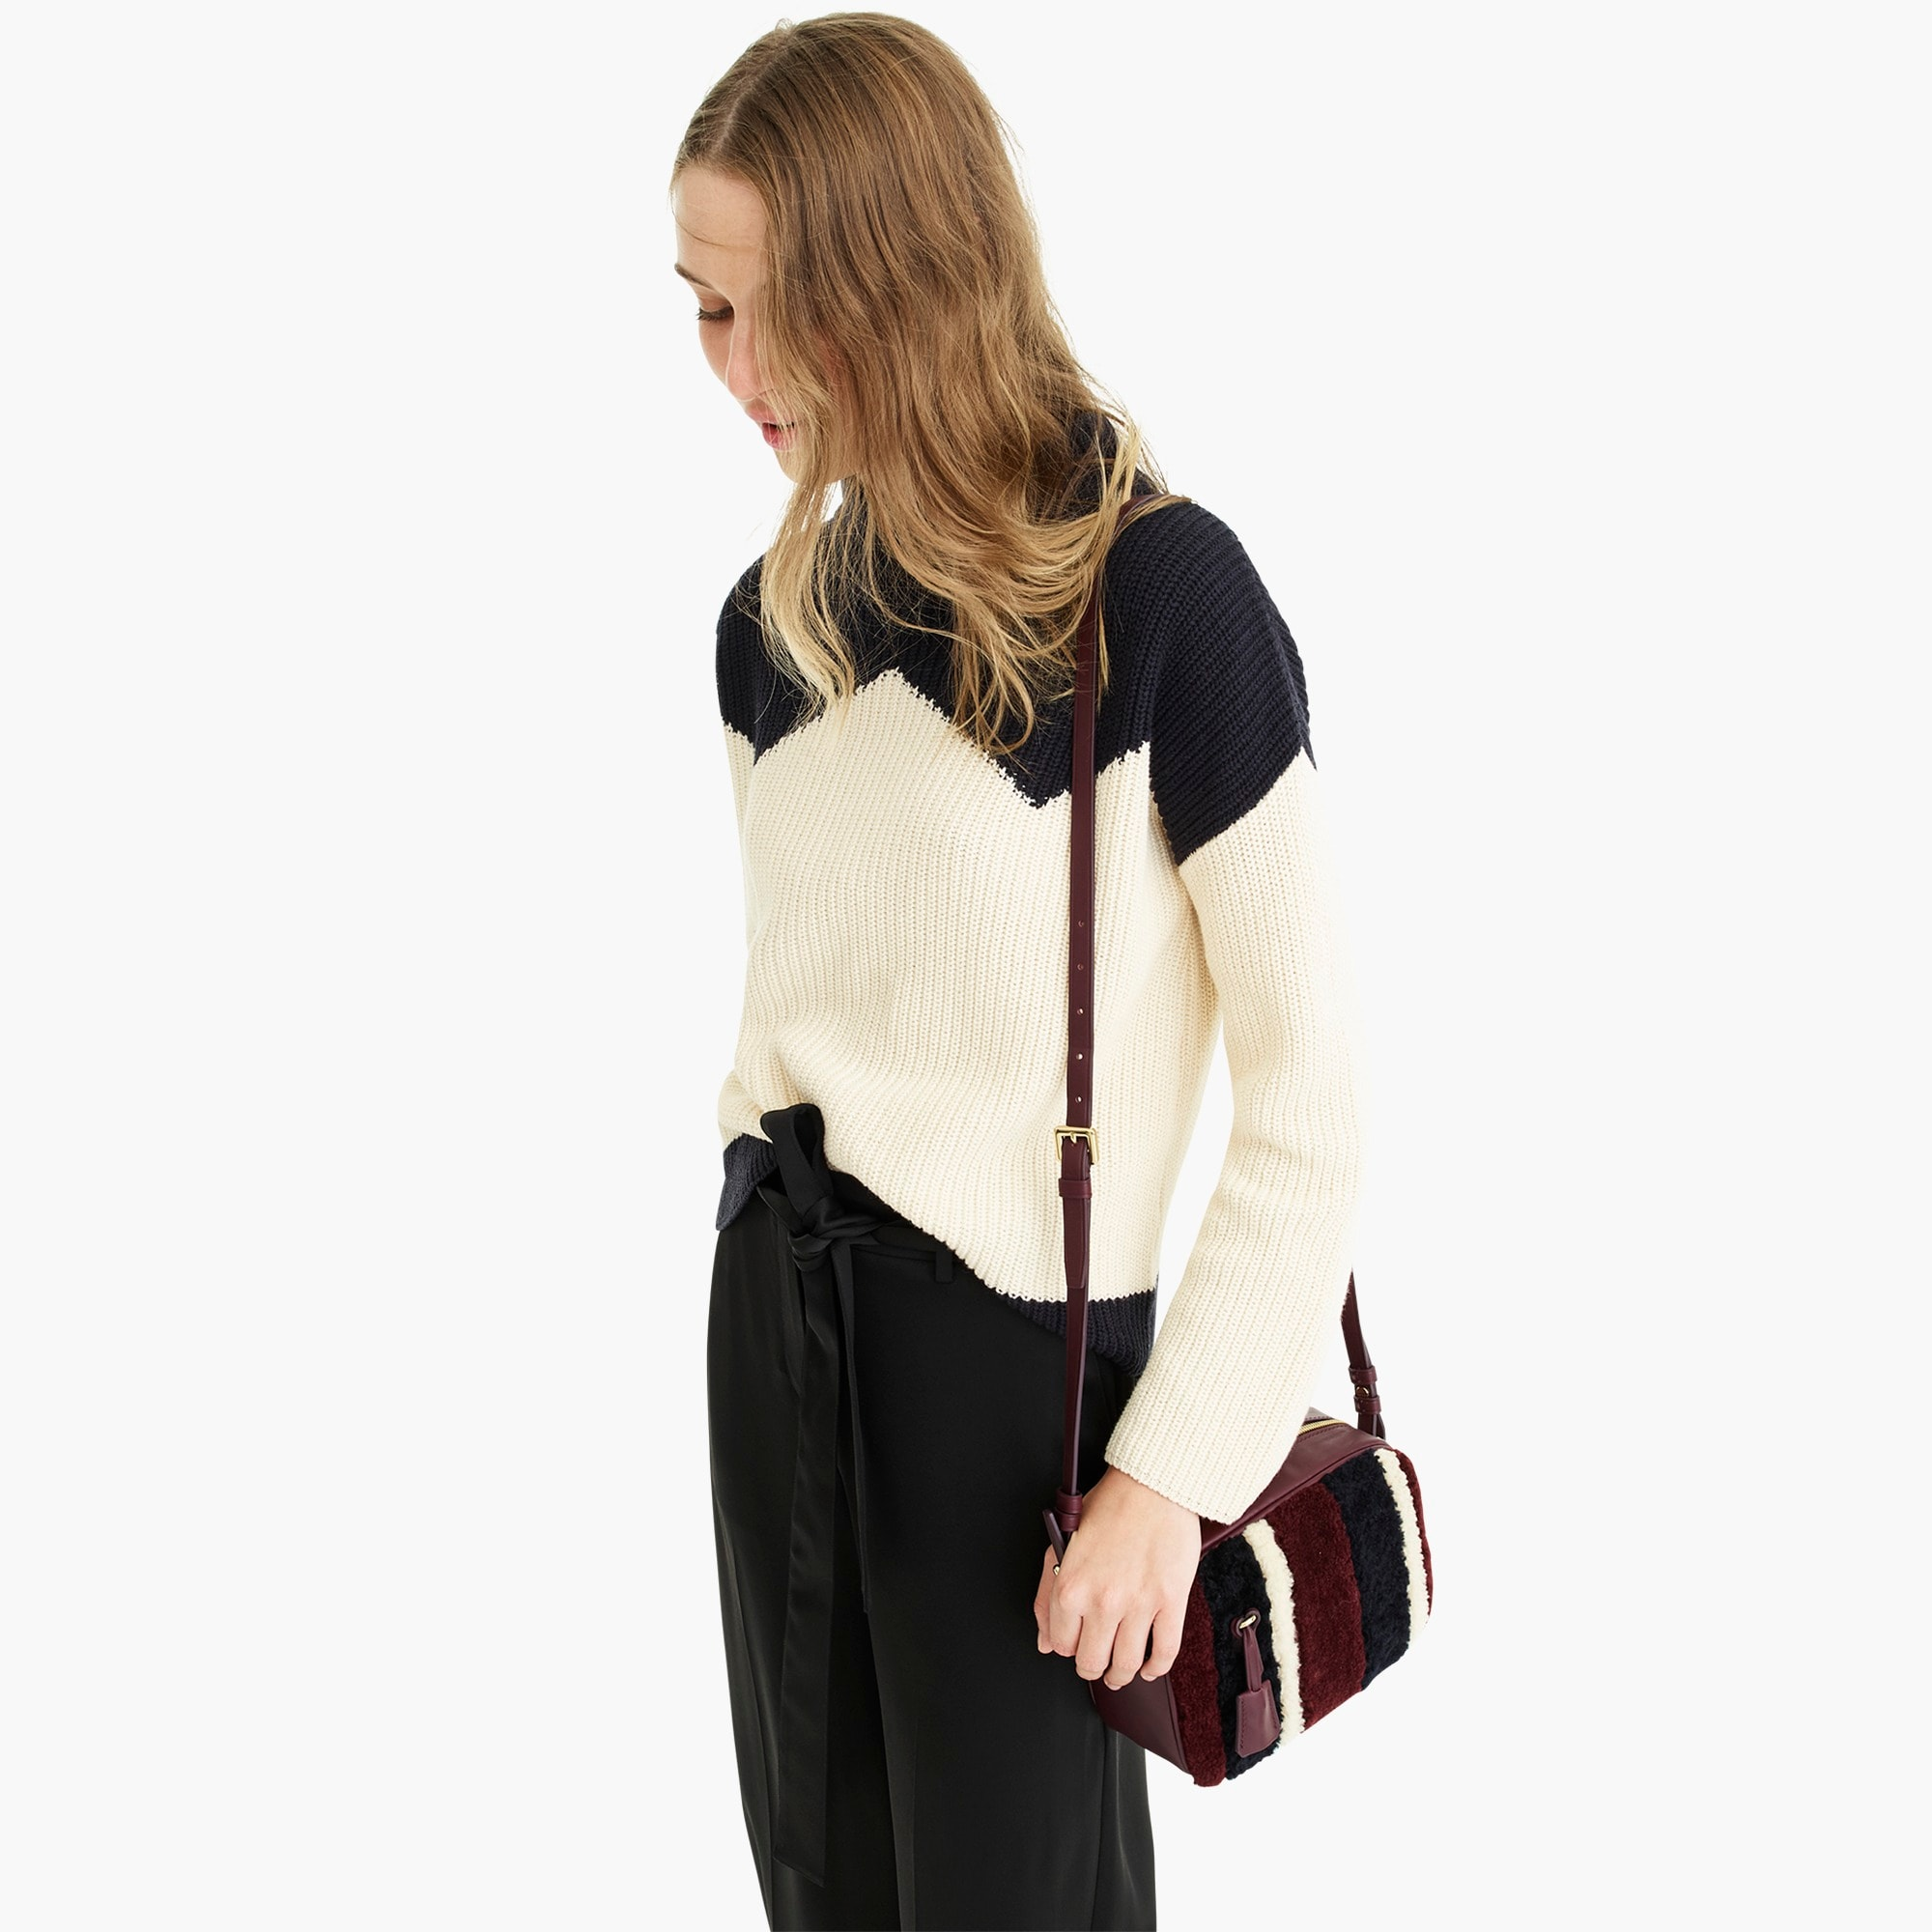 womens The Reeds X J.Crew ski sweater